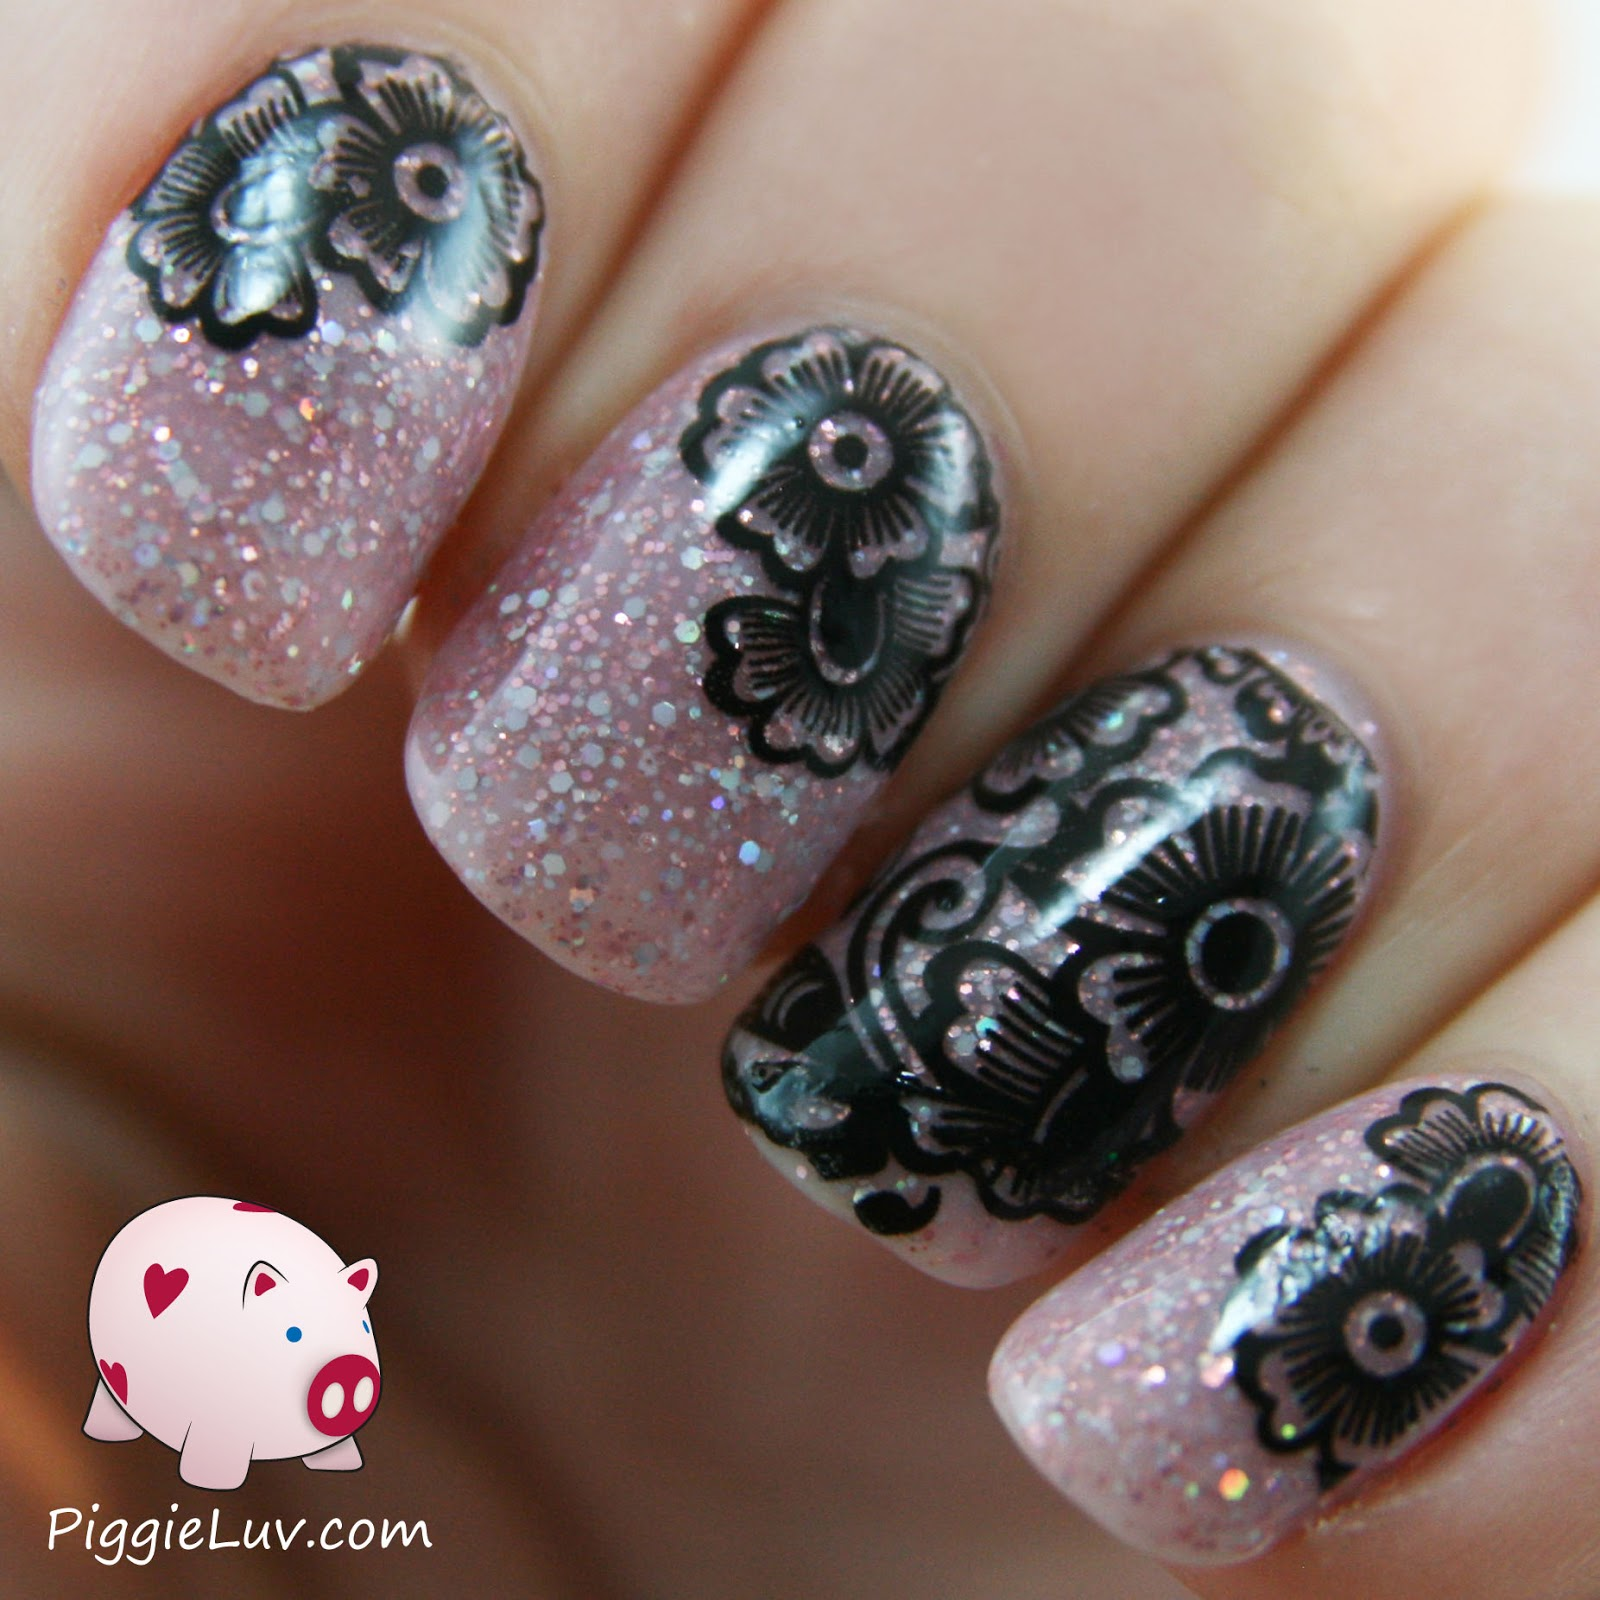 Piggieluv Easy Nail Art With Kiss Nail Tattoos Ideas And Designs